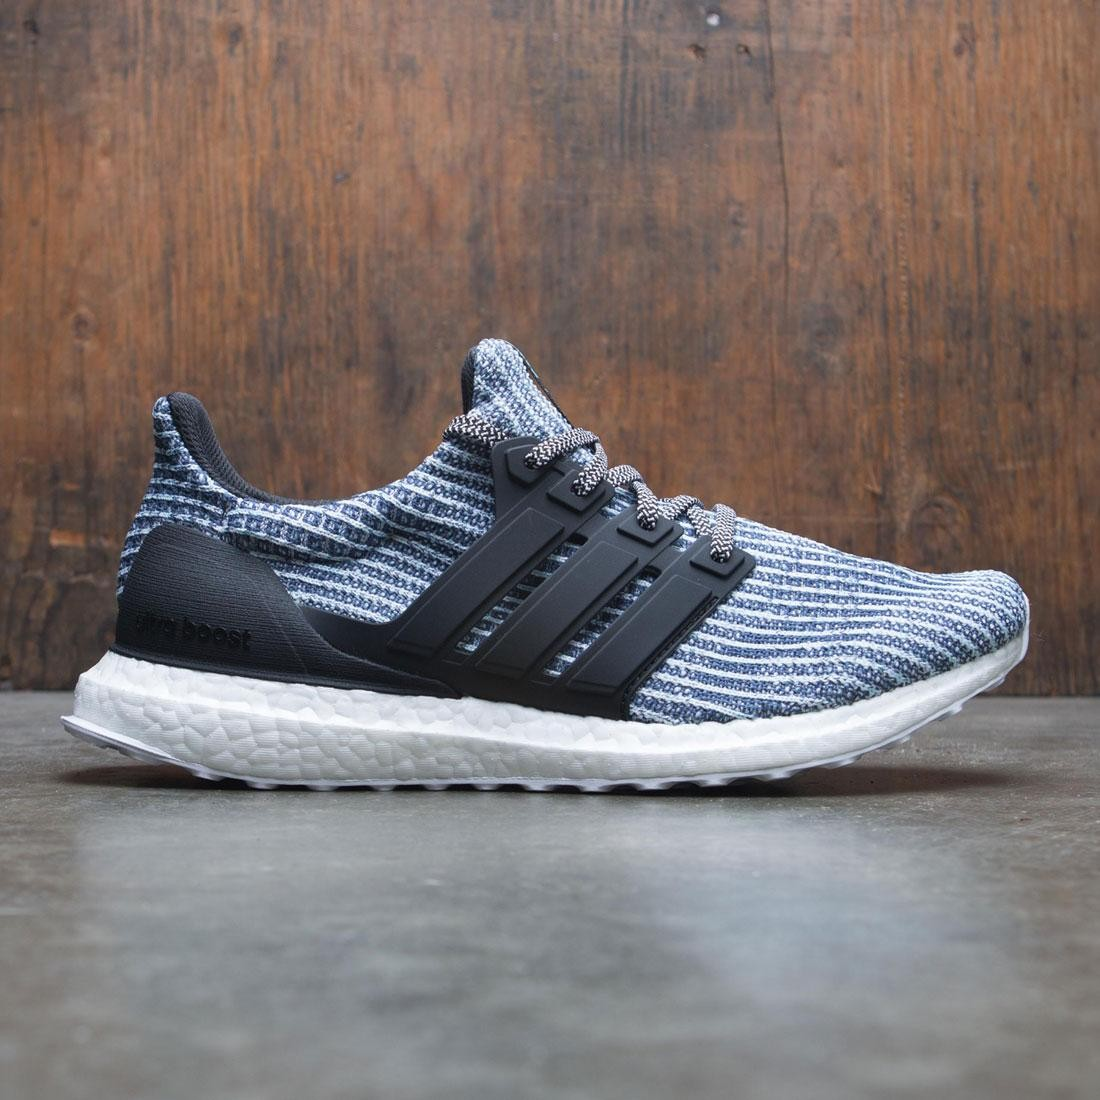 44d87c27c Adidas Men UltraBOOST Parley white carbon blue spirit